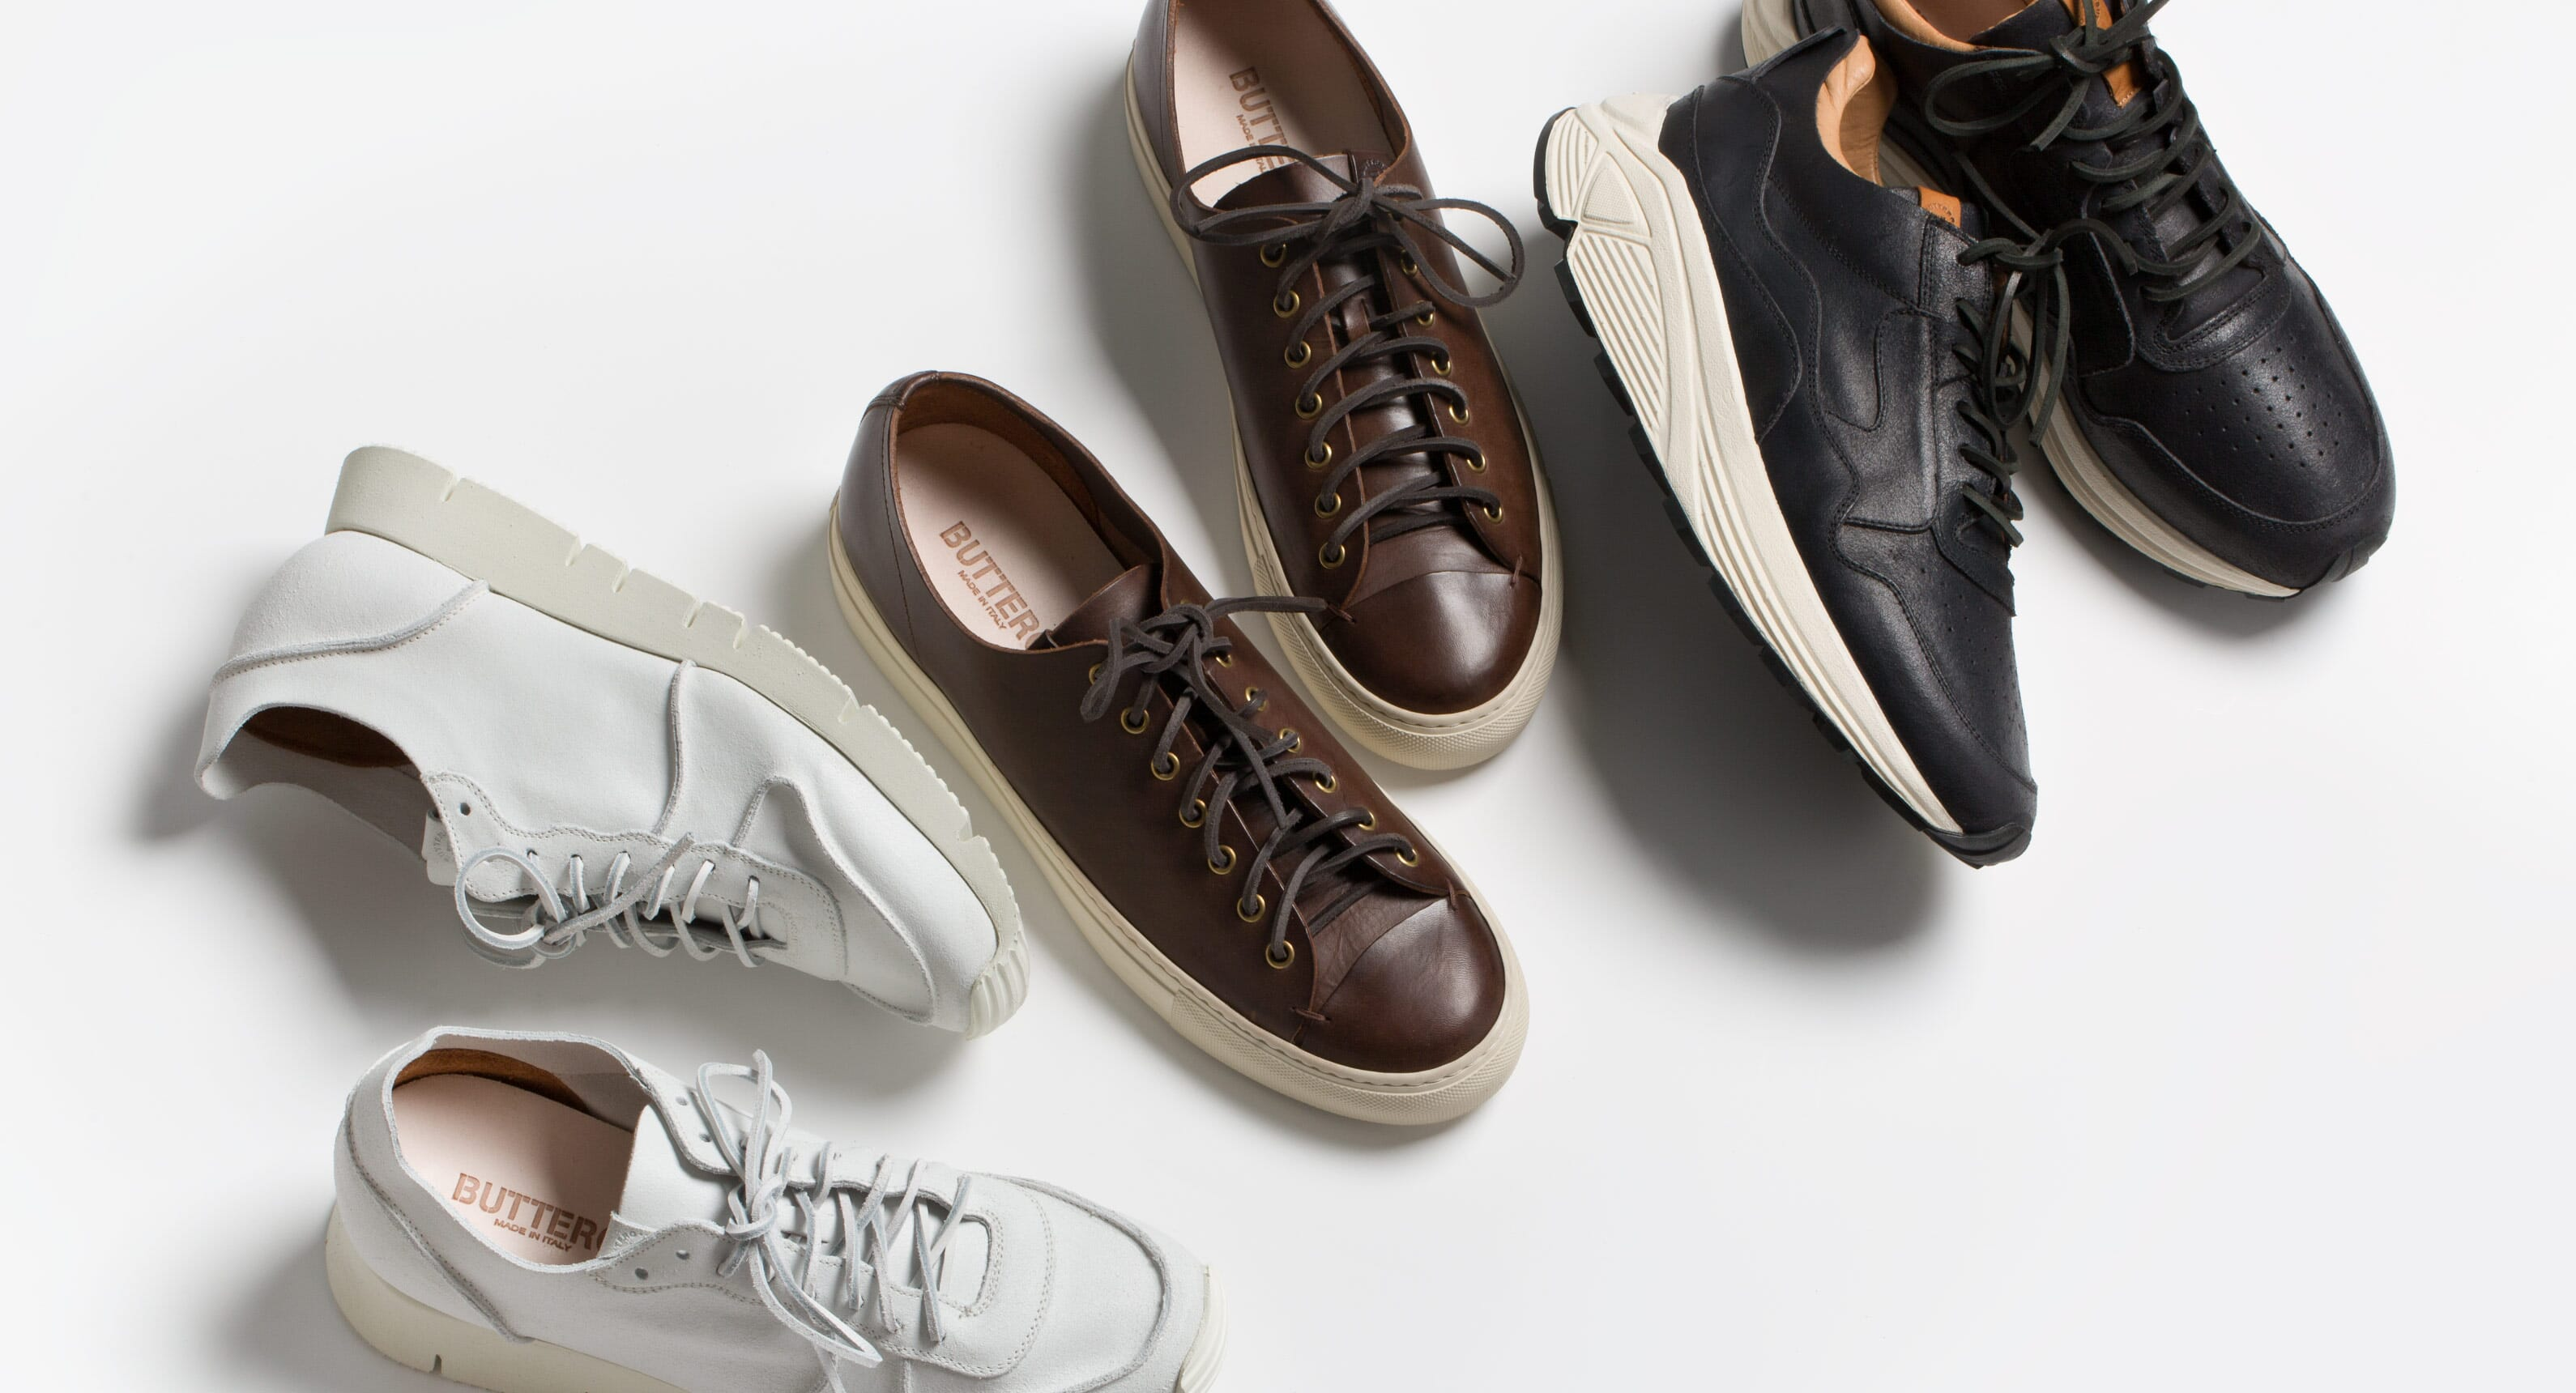 The Best Handmade Summer Shoes From Buttero